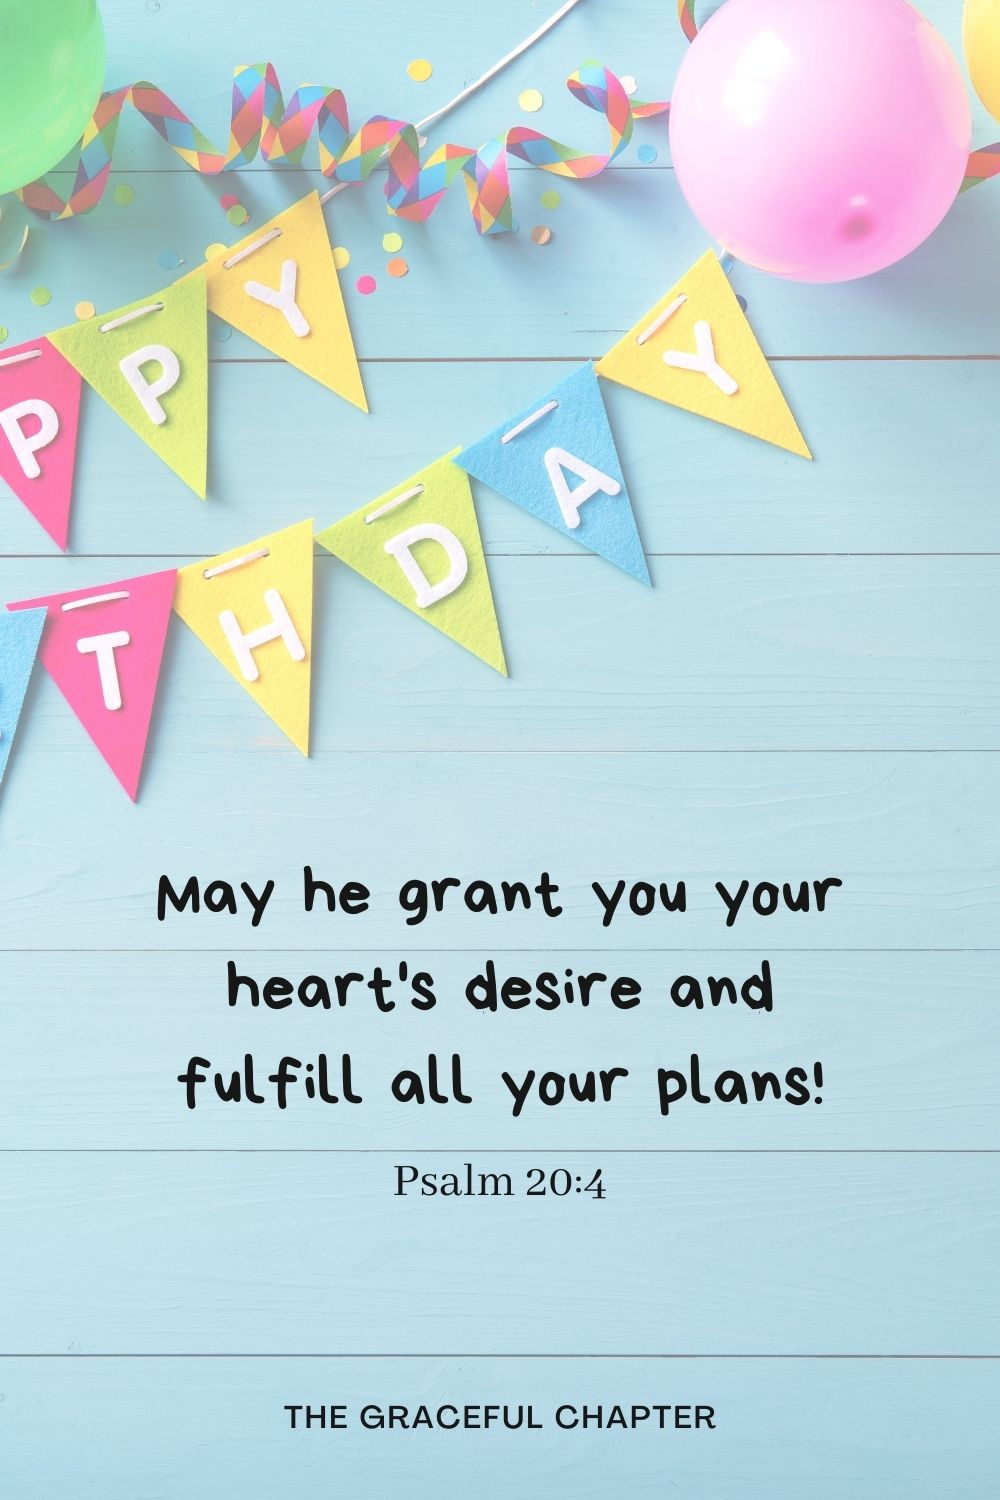 May he grant you your heart's desire and fulfill all your plans! May he grant you your heart's desire and fulfill all your plans! Psalm 20:4